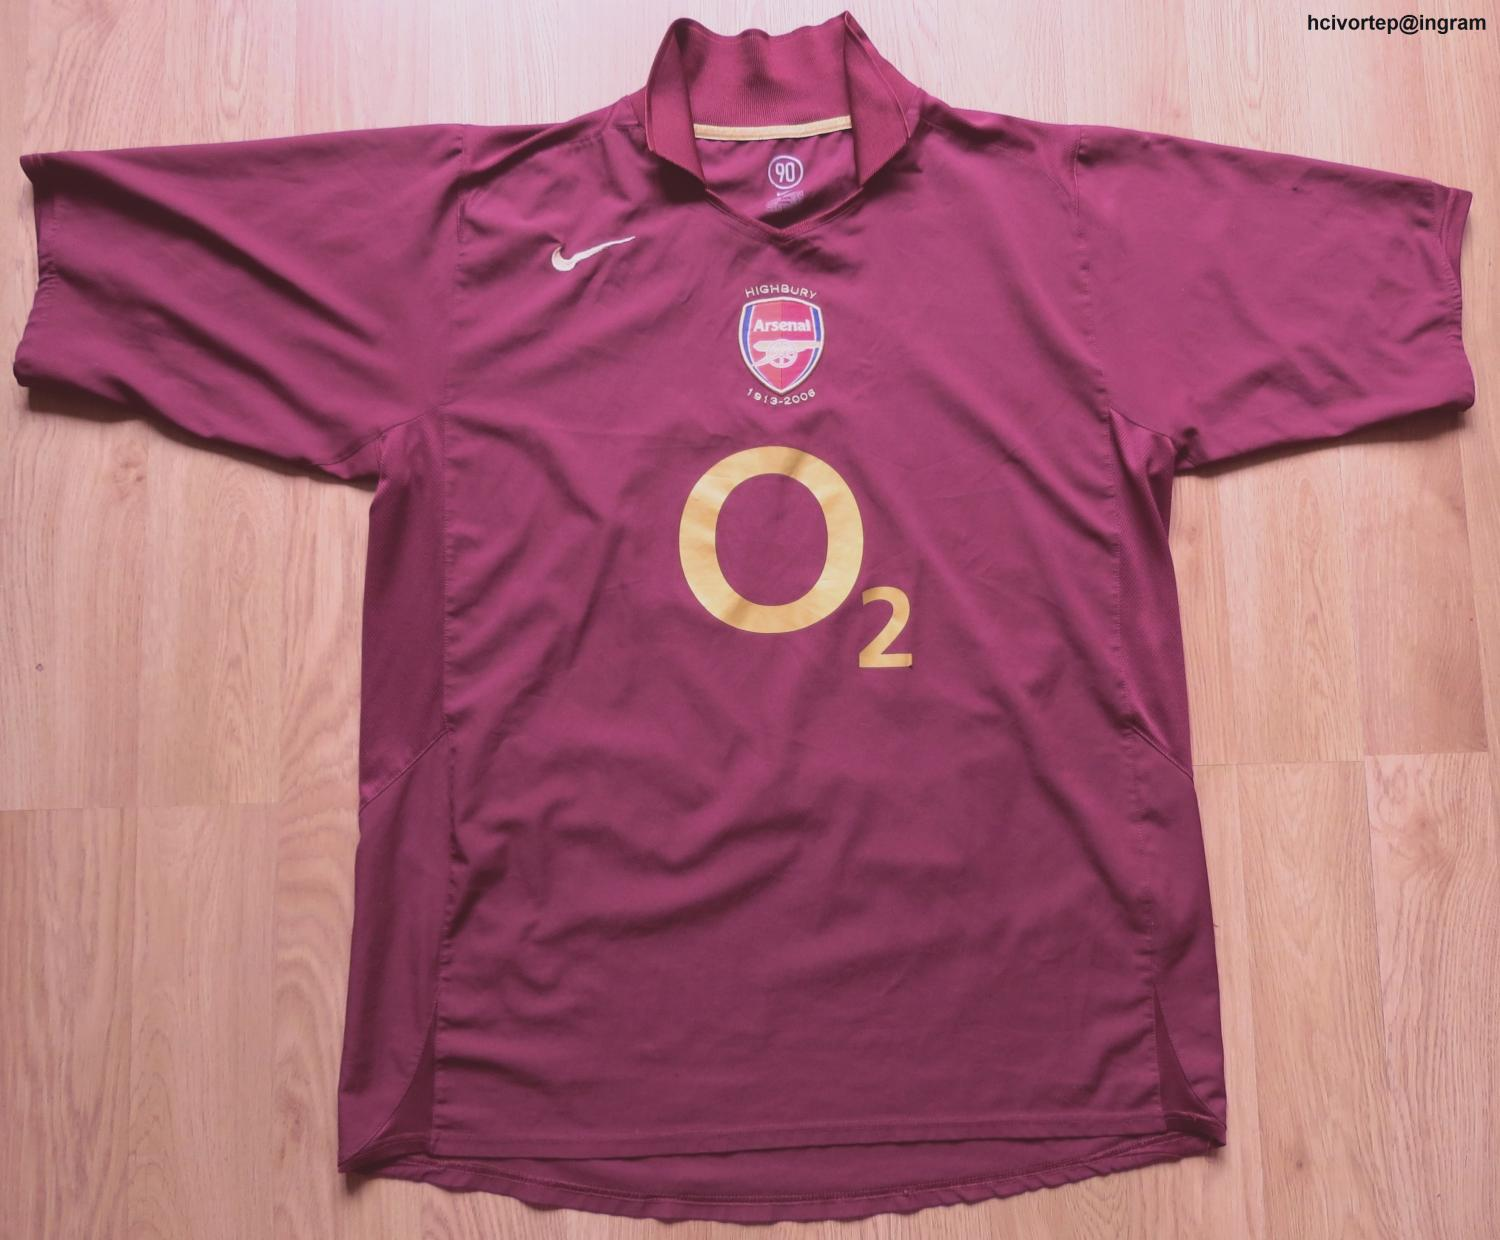 868ed2fbb Arsenal Home футболка 2005 - 2006. Sponsored by O2